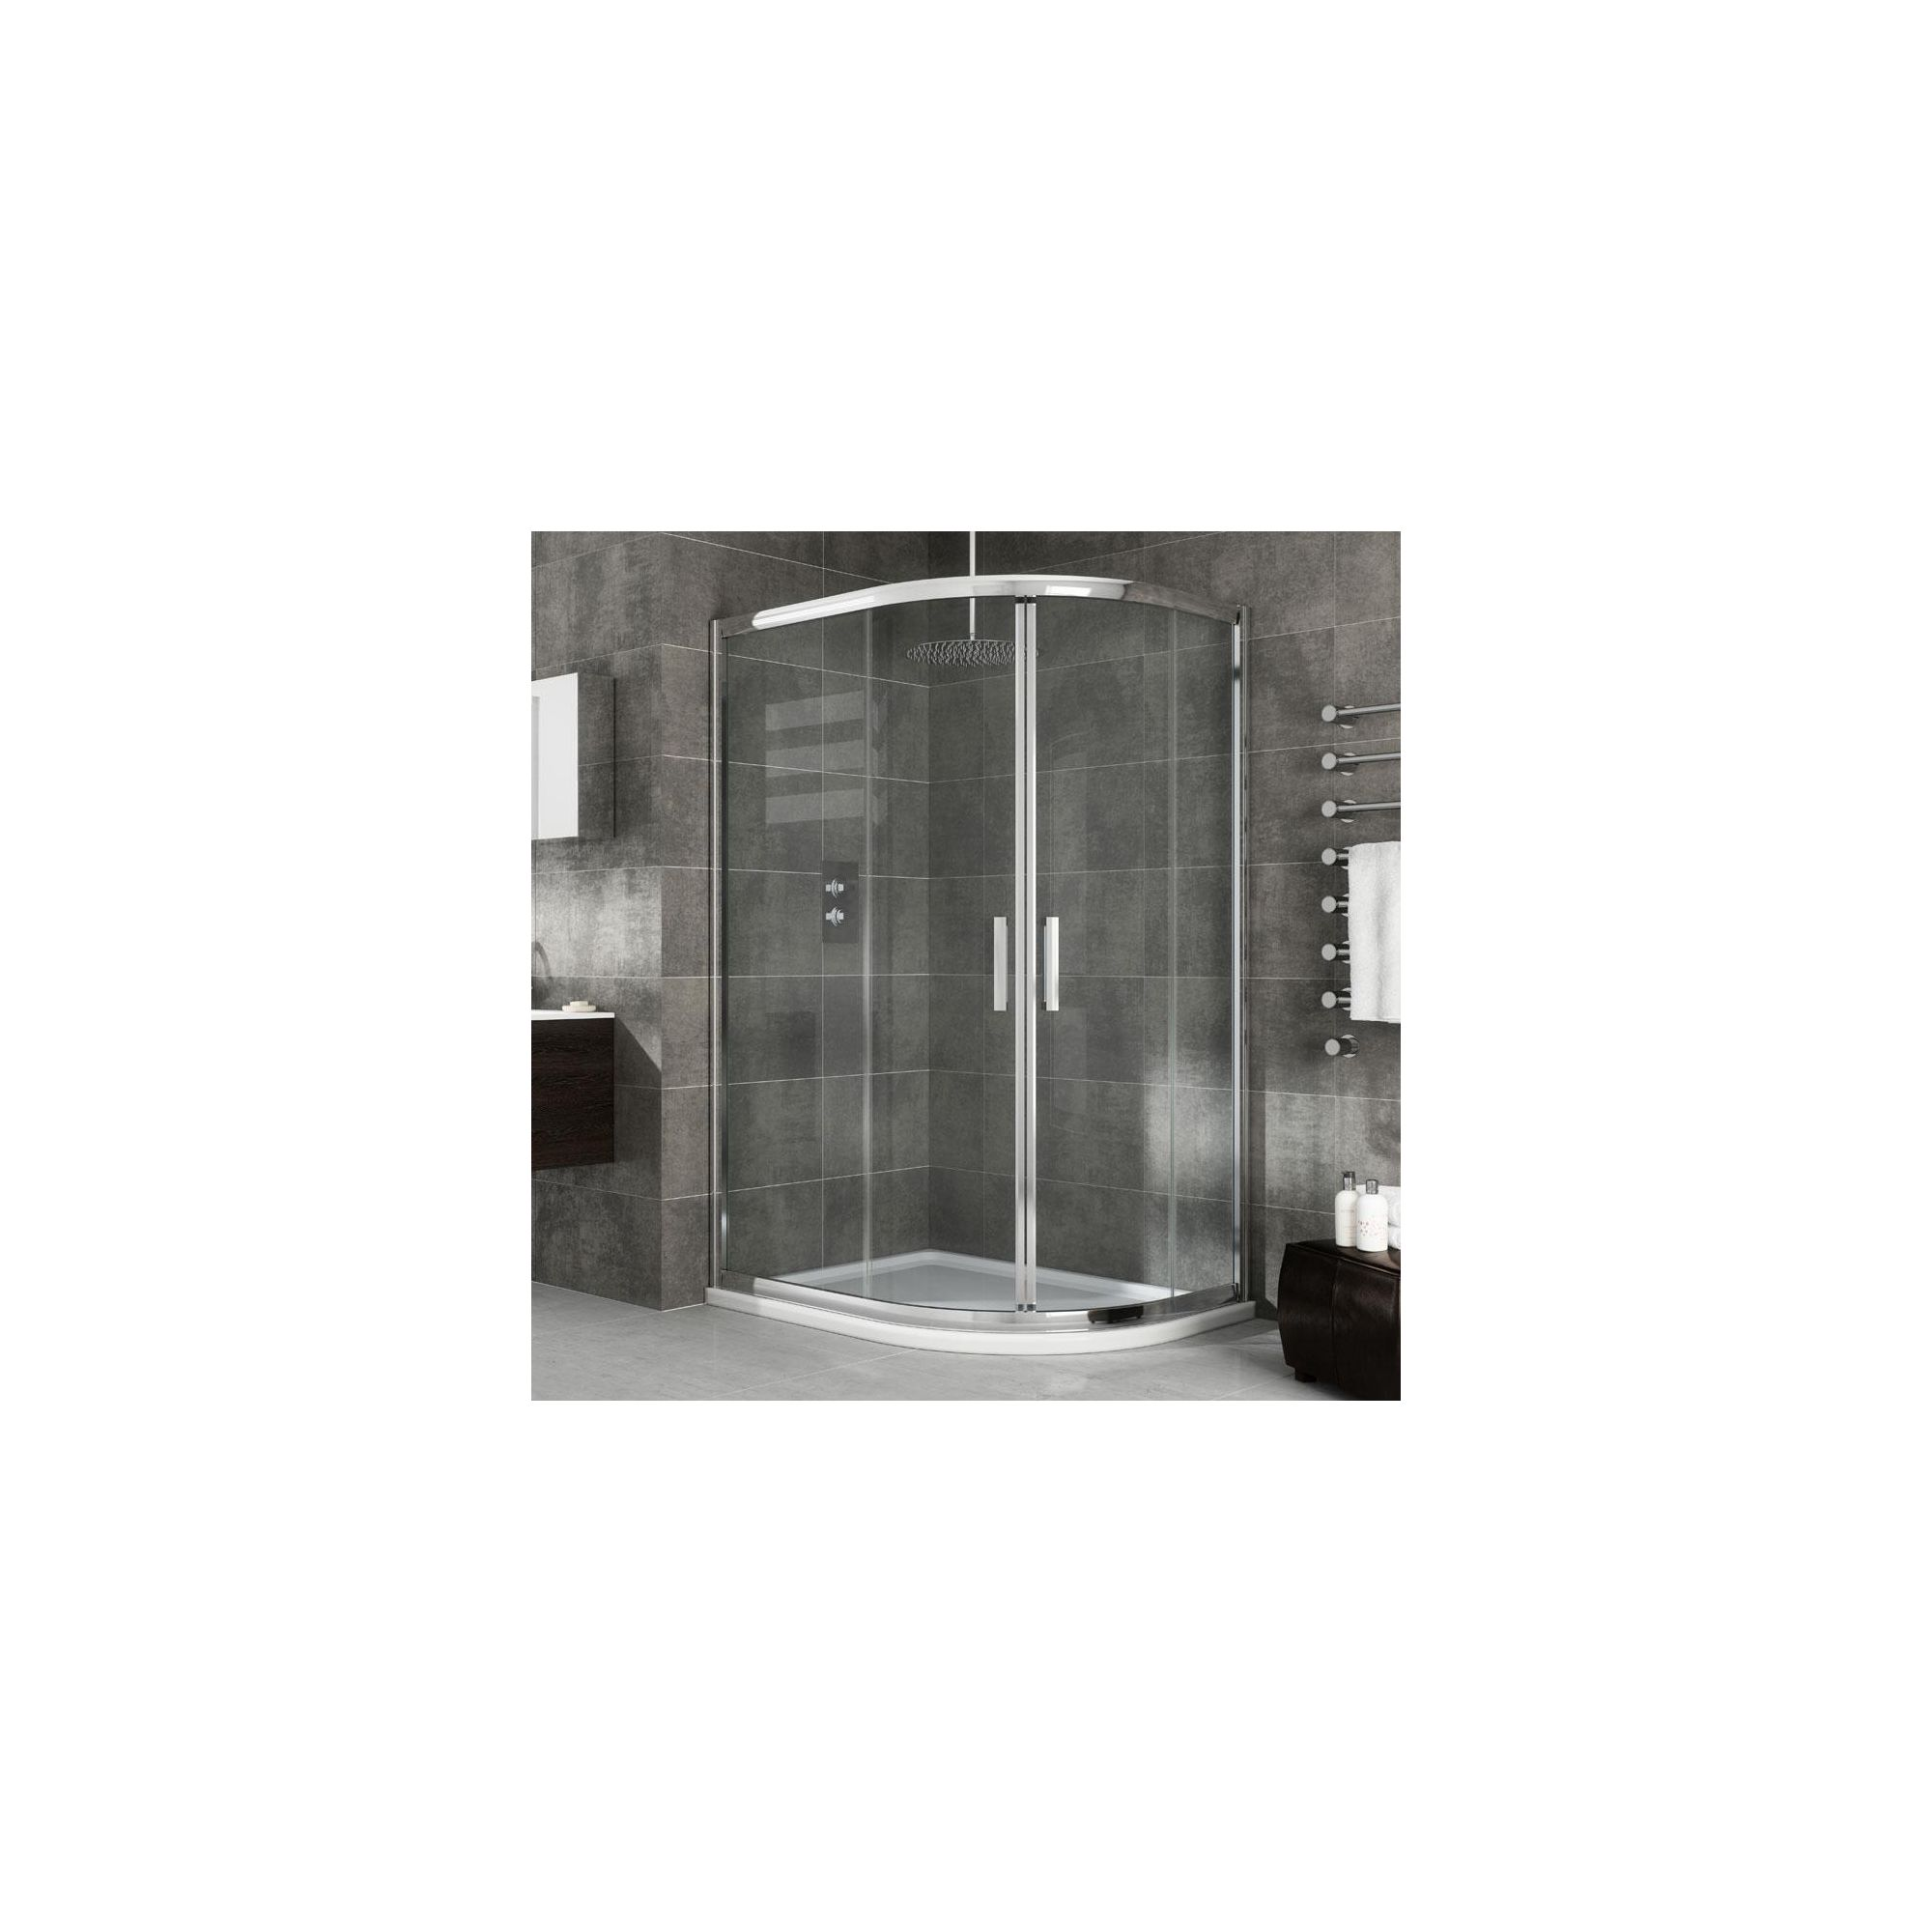 Elemis Eternity Offset Quadrant Shower Enclosure, 1000mm x 800mm, 8mm Glass, Low Profile Tray, Left Handed at Tesco Direct